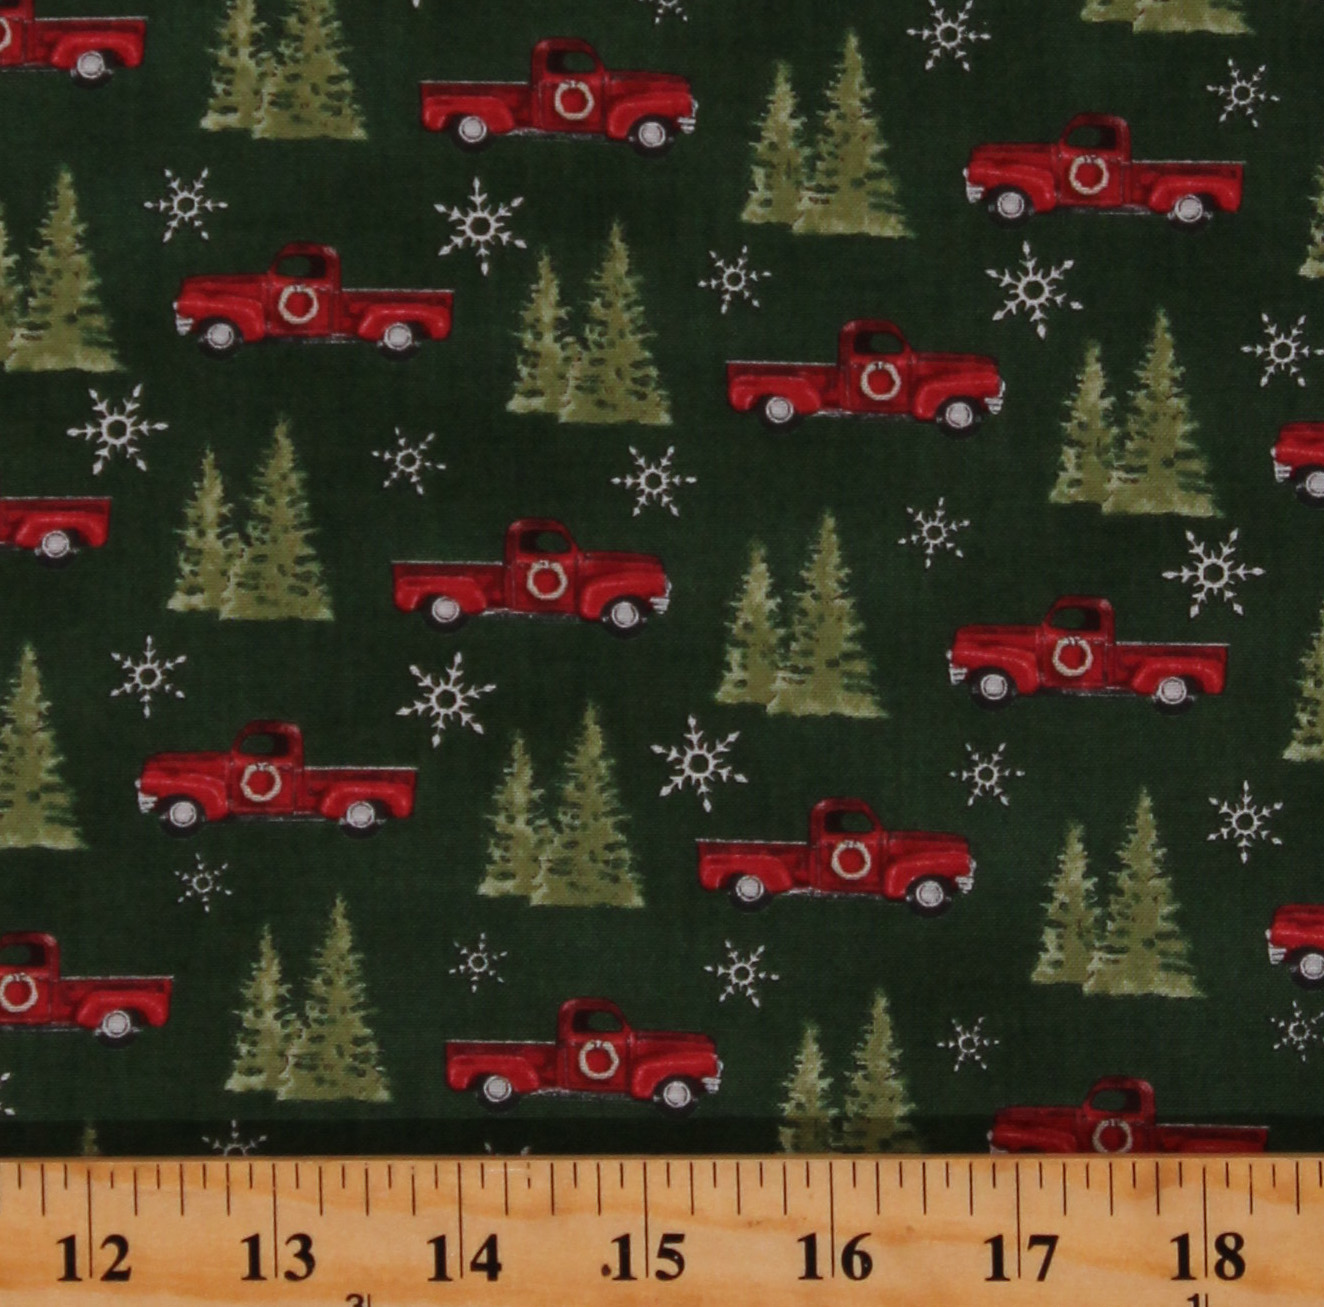 Cotton Red Trucks Christmas Trees Winter Snowflakes Homegrown Holidays Green Cotton Fabric Print By The Yard 19942 15